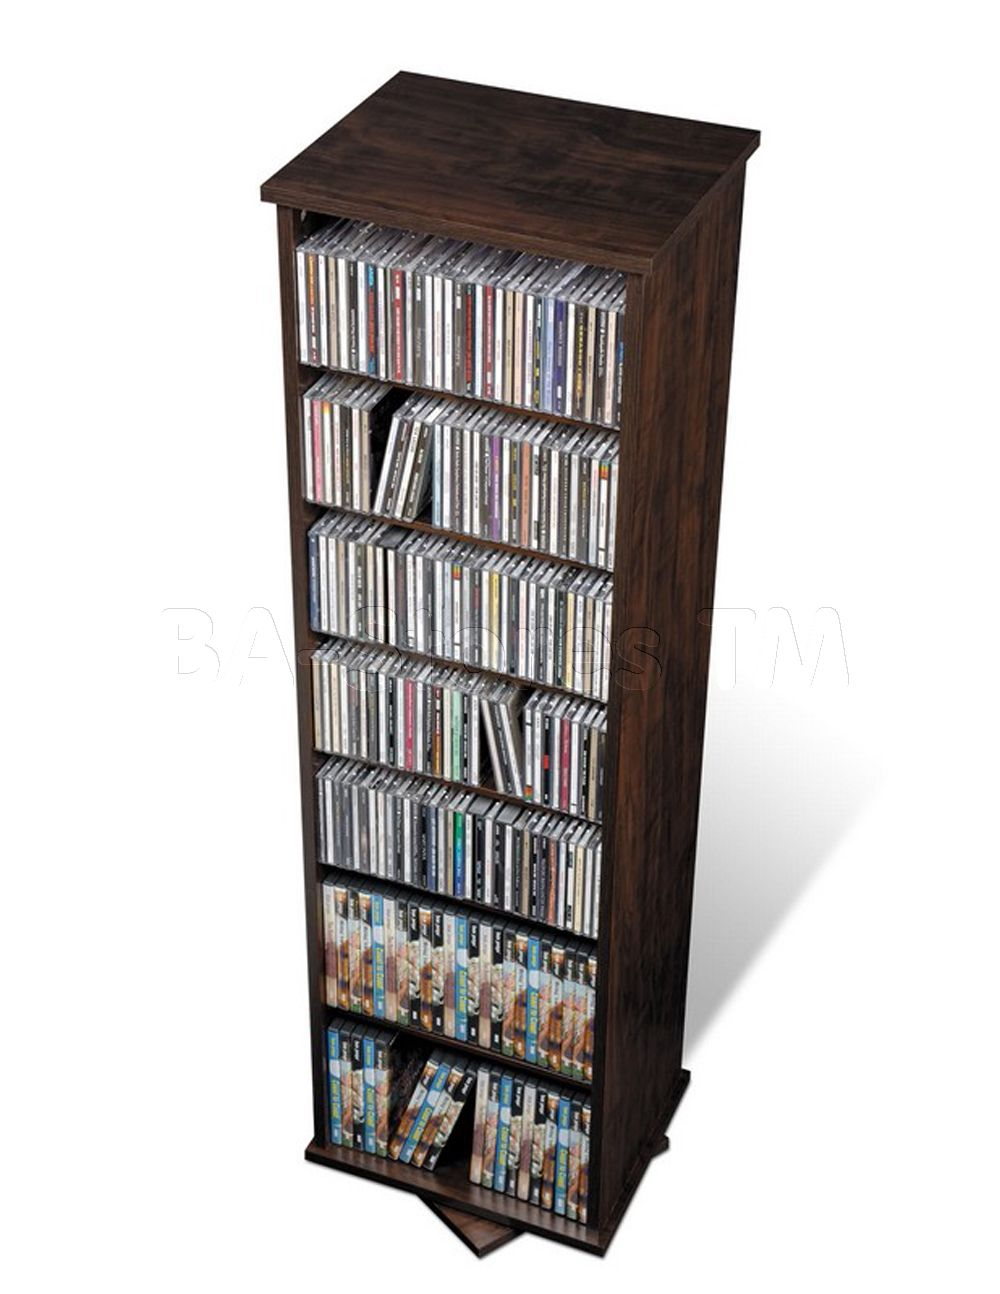 Two Sided Spinning Tower In Espresso Prepac Furniture Cd Dvd